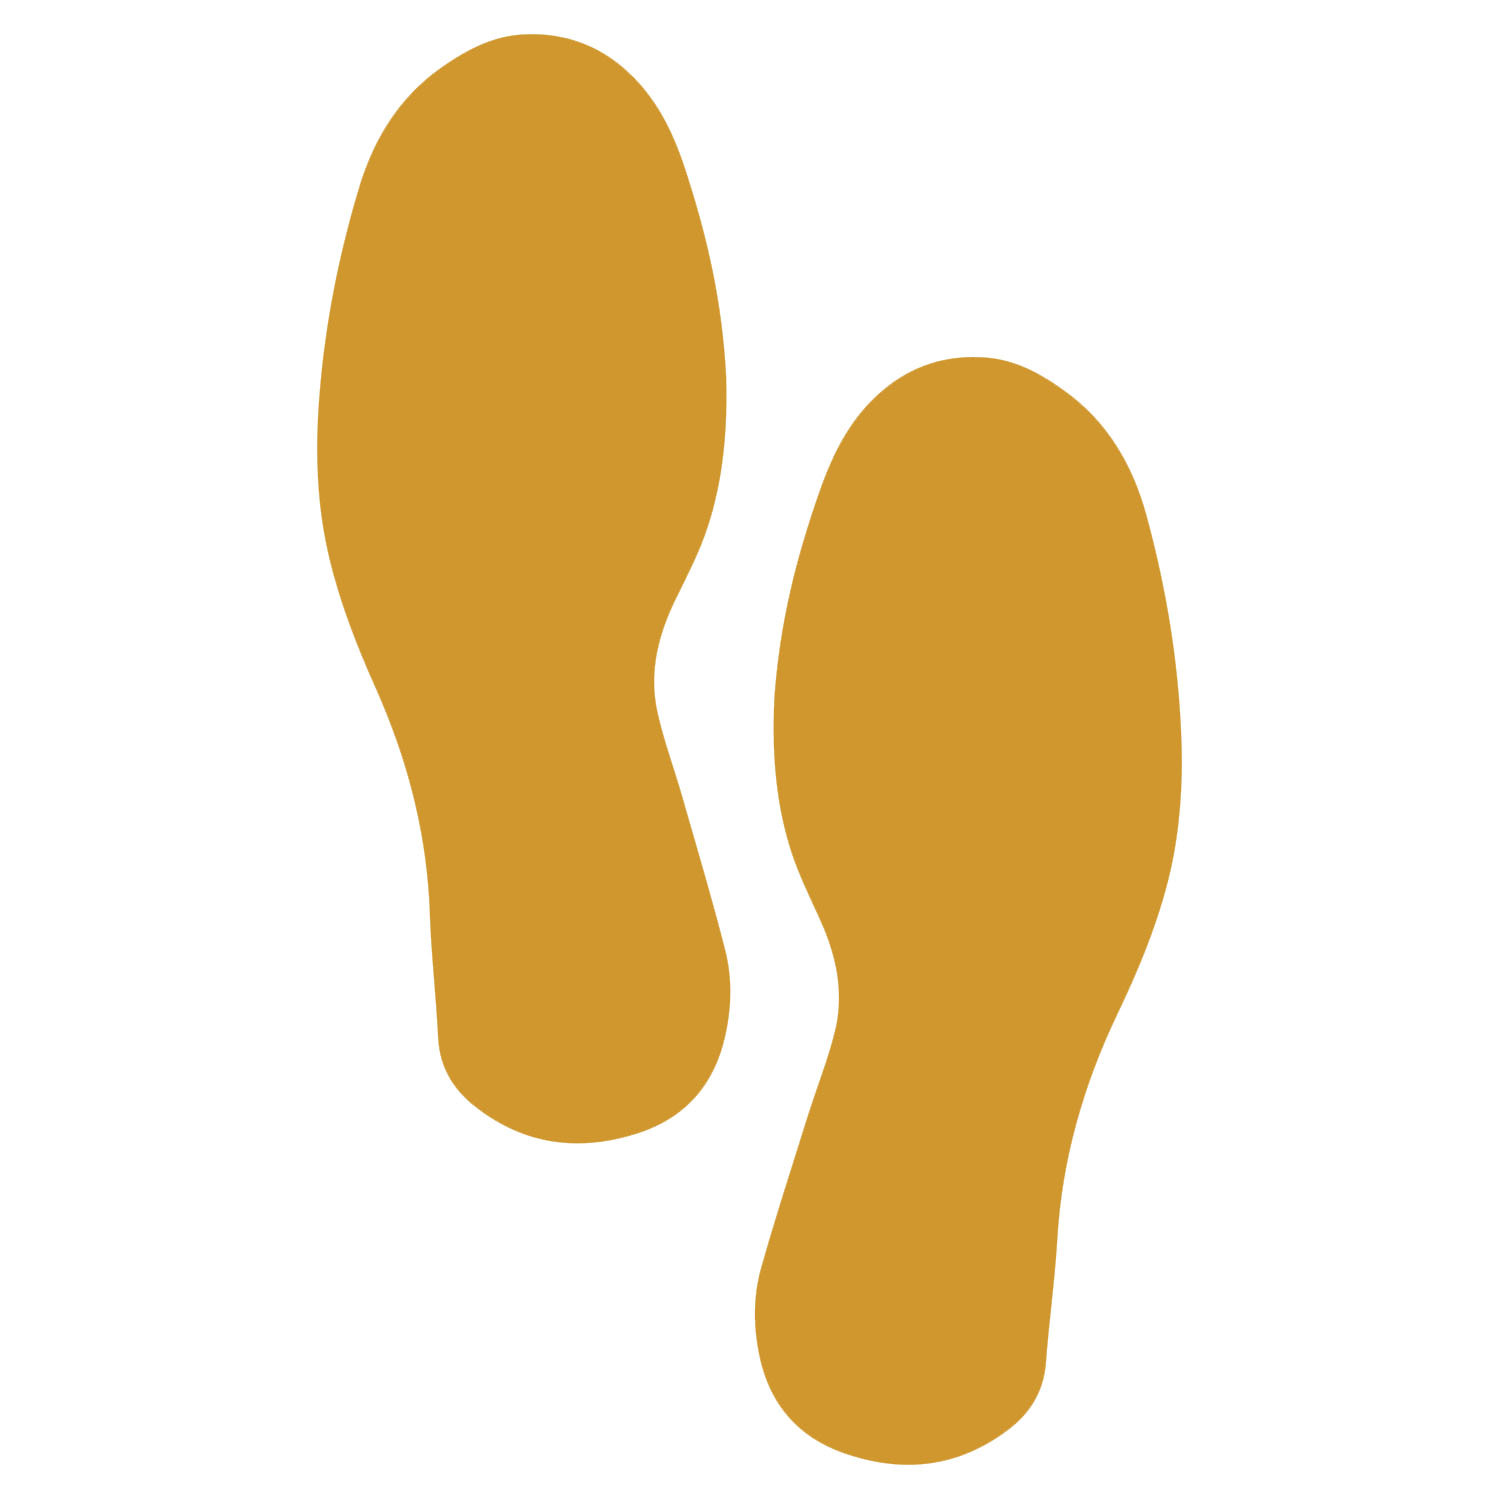 Primary image for LiteMark Large Size Gold Durable Footprint Decals  - Pack of 8 (4 Pairs)